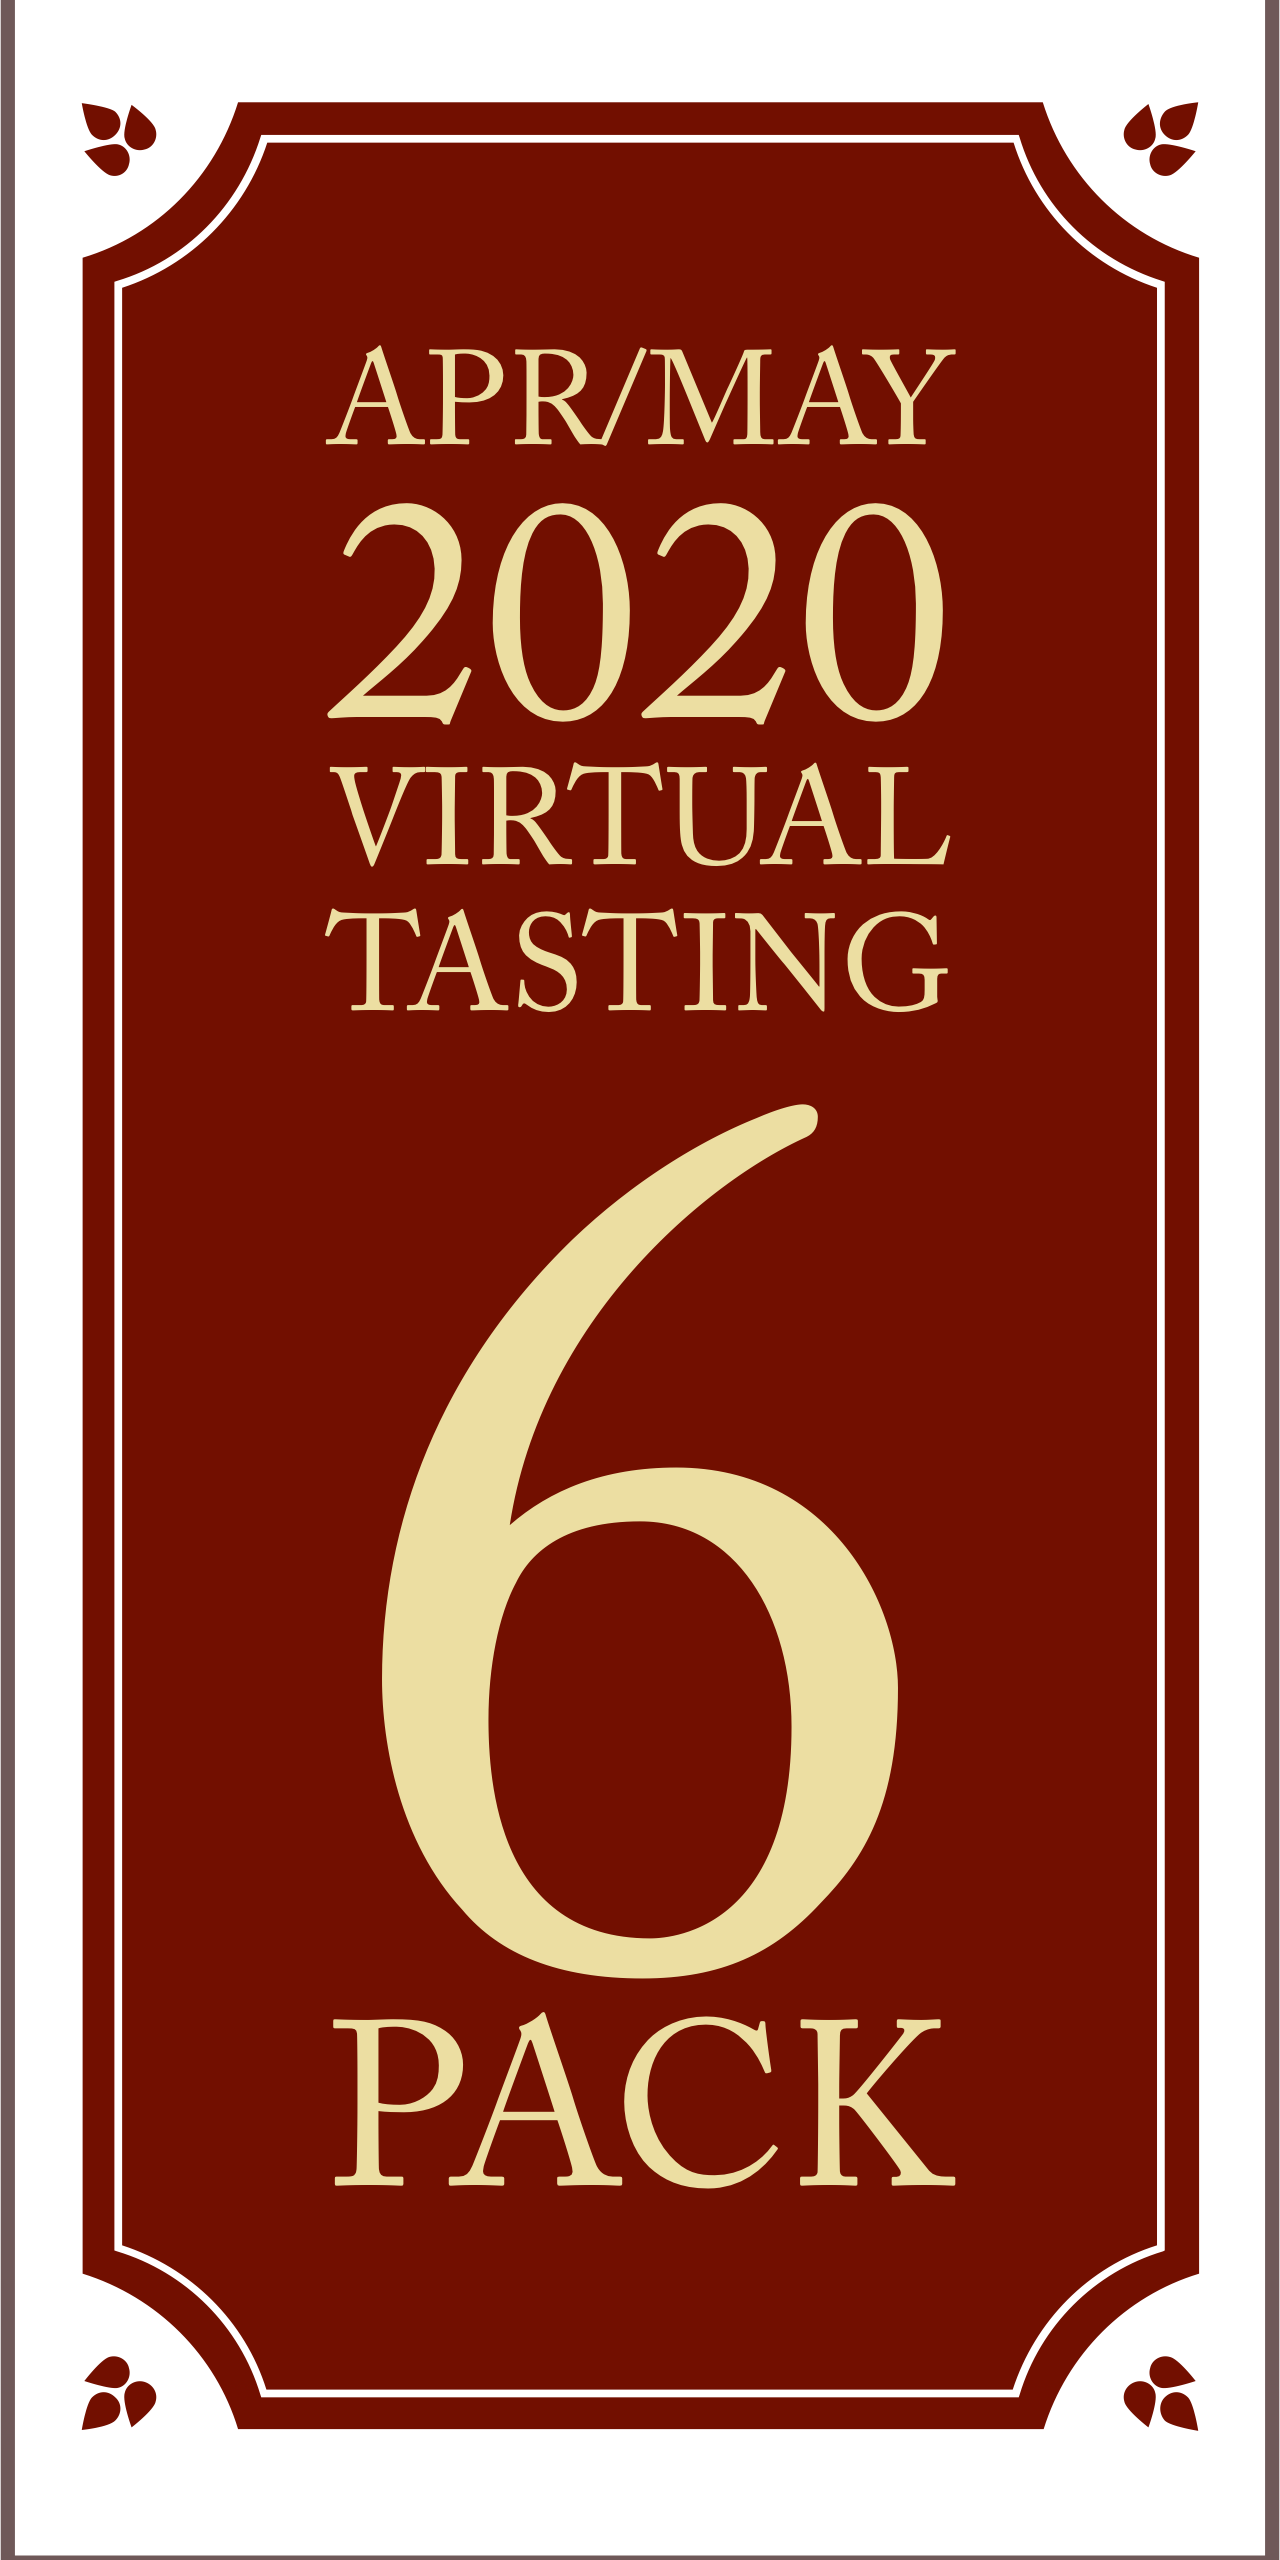 April/May 2020 Virtual Tasting 6 pack #2 (6x750ml)